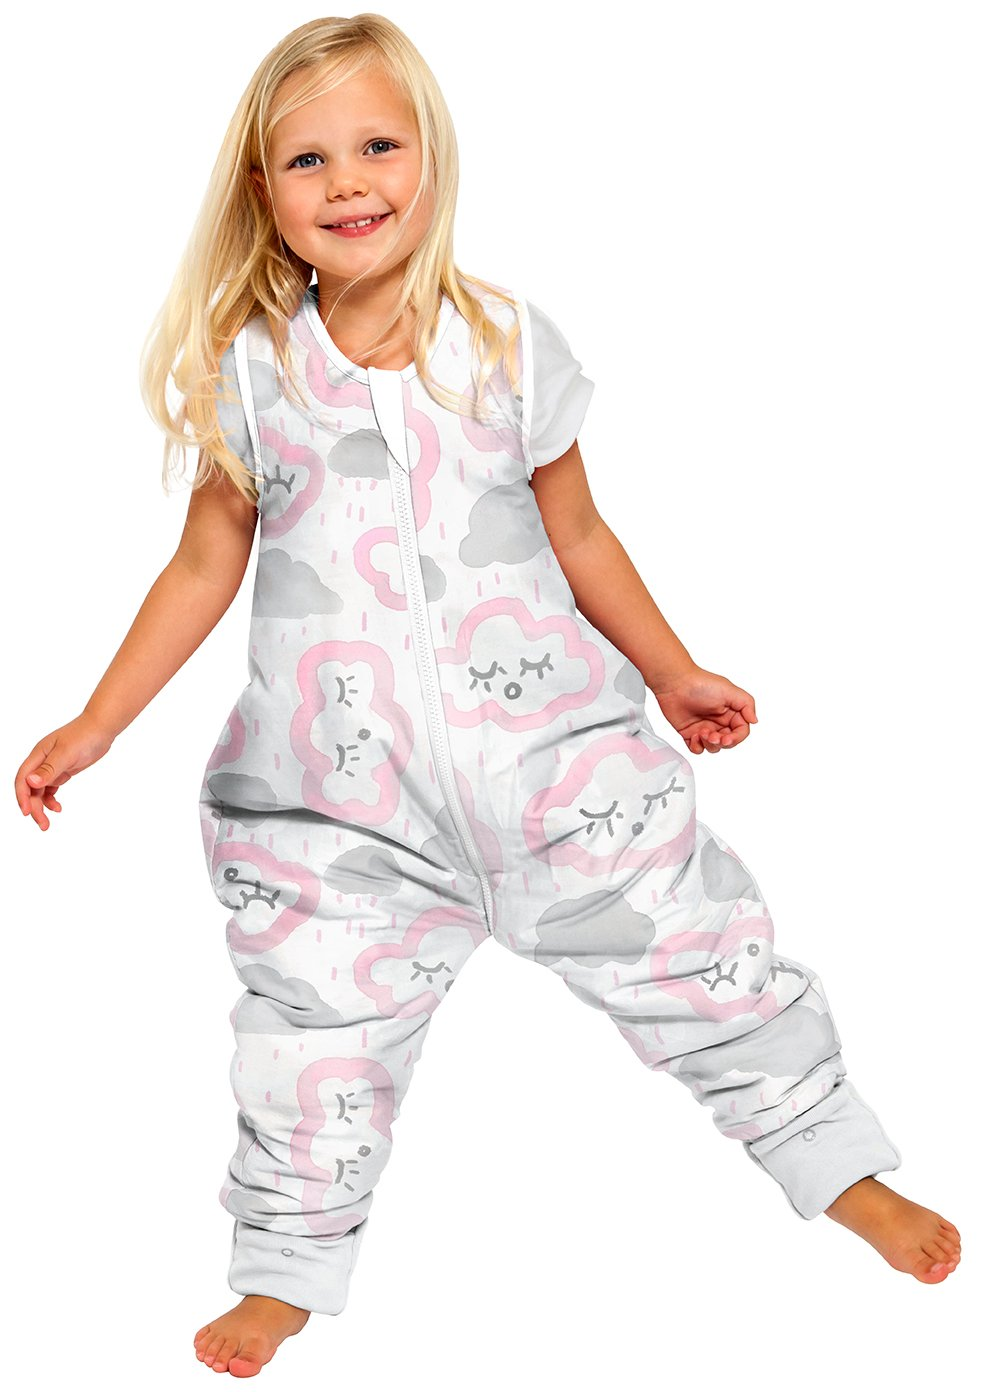 Coolies No Arms Cotton 2-3Y 1.0 TOG CLOUDS - PINK